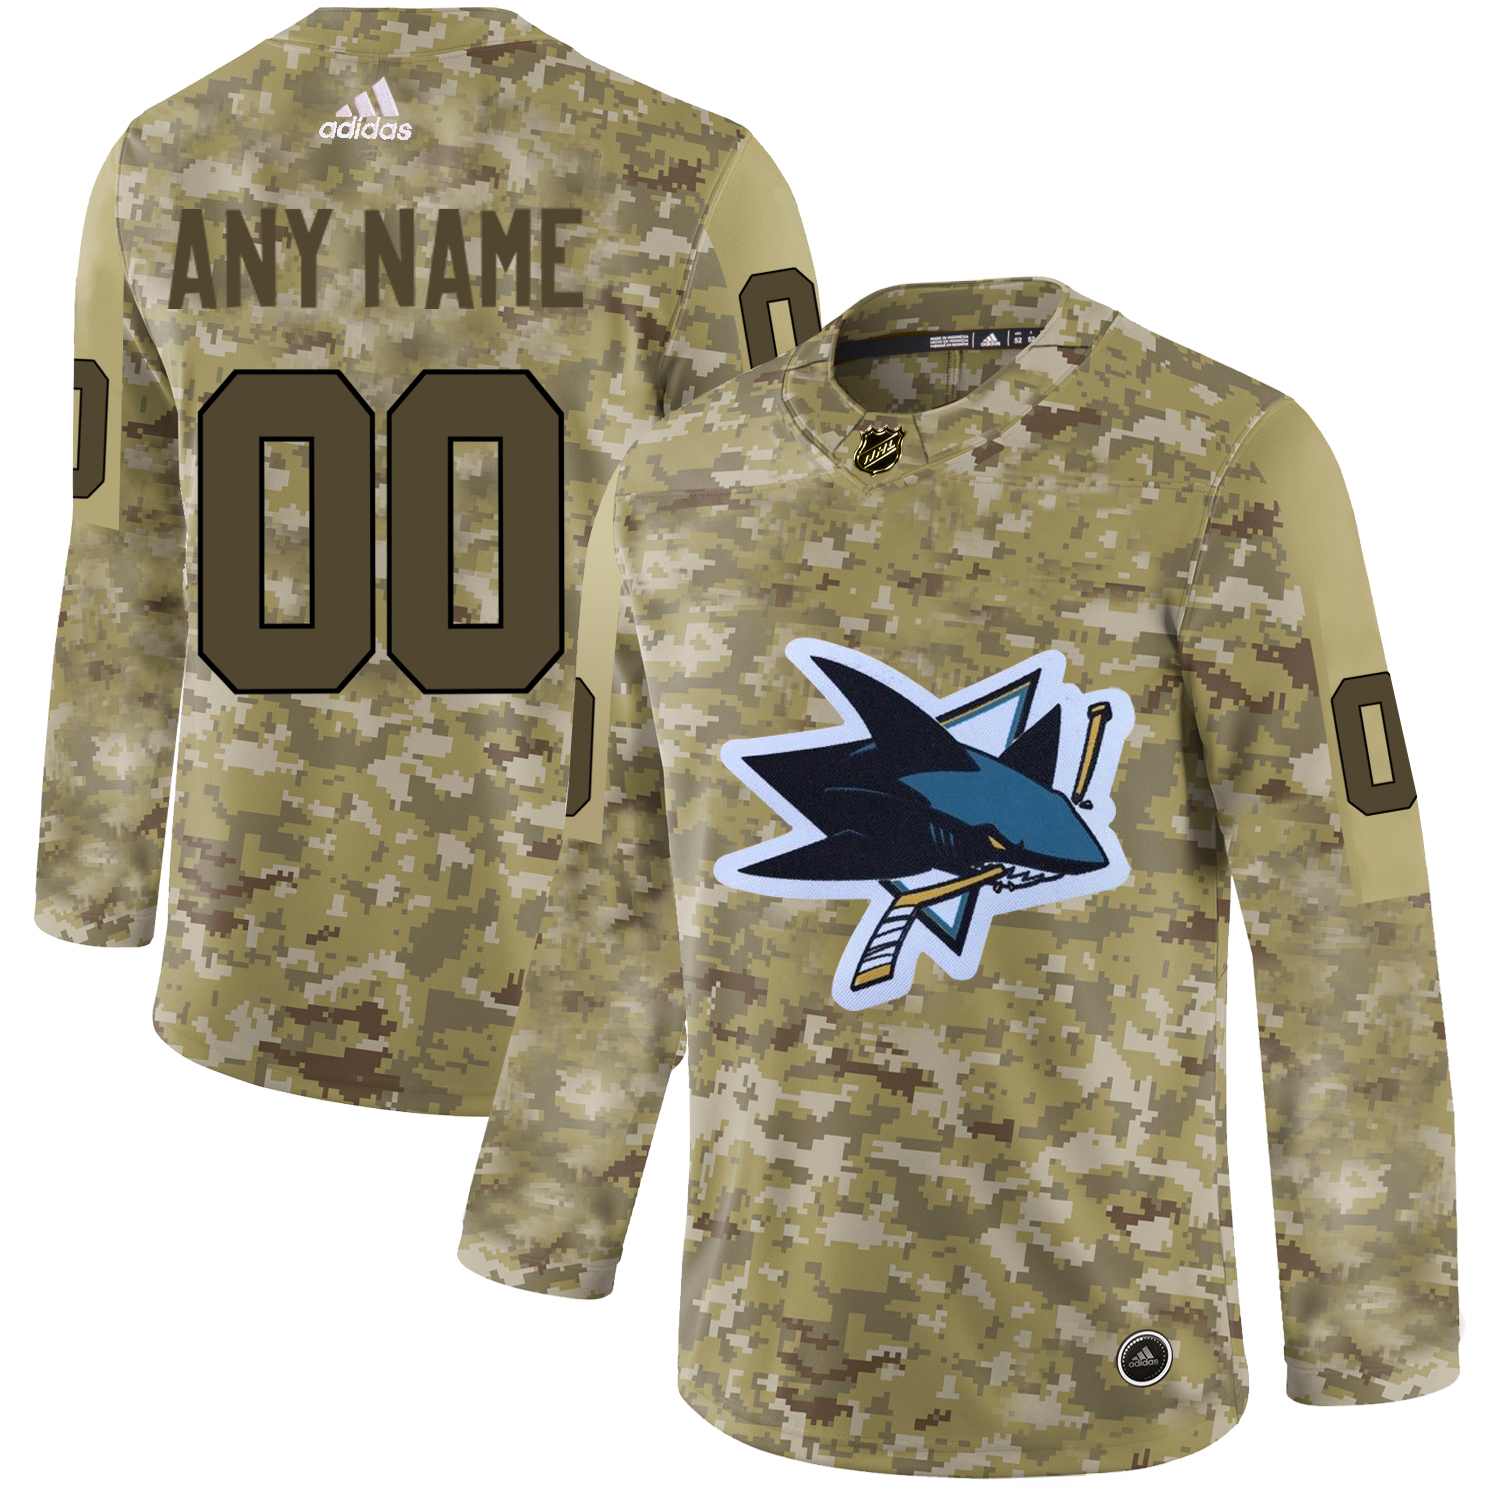 San Jose Sharks Camo Men's Customized Adidas Jersey